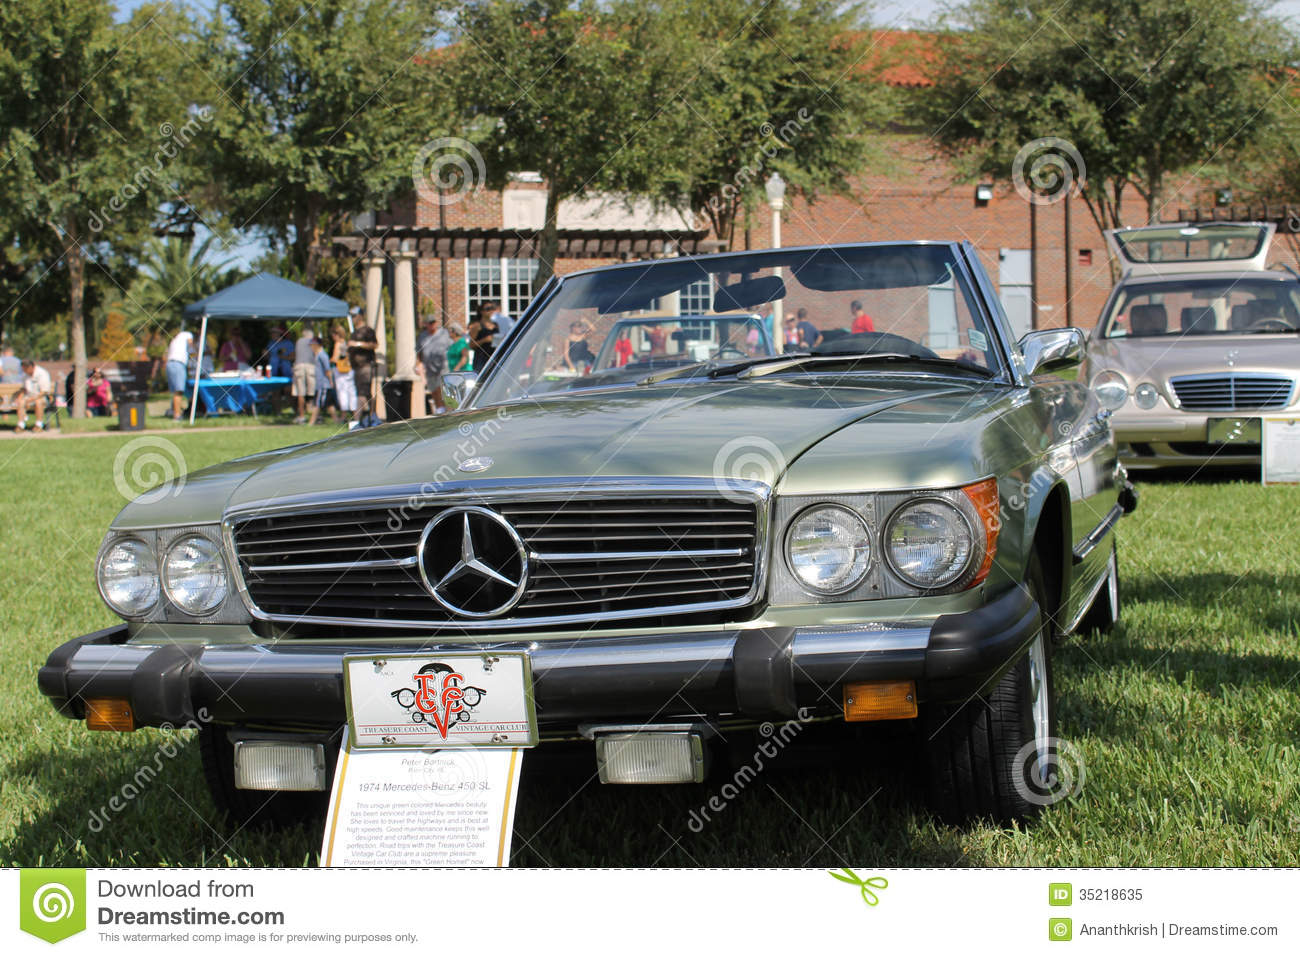 Old mercedes benz 450 sl car at the car show editorial for Mercedes benz of lakeland